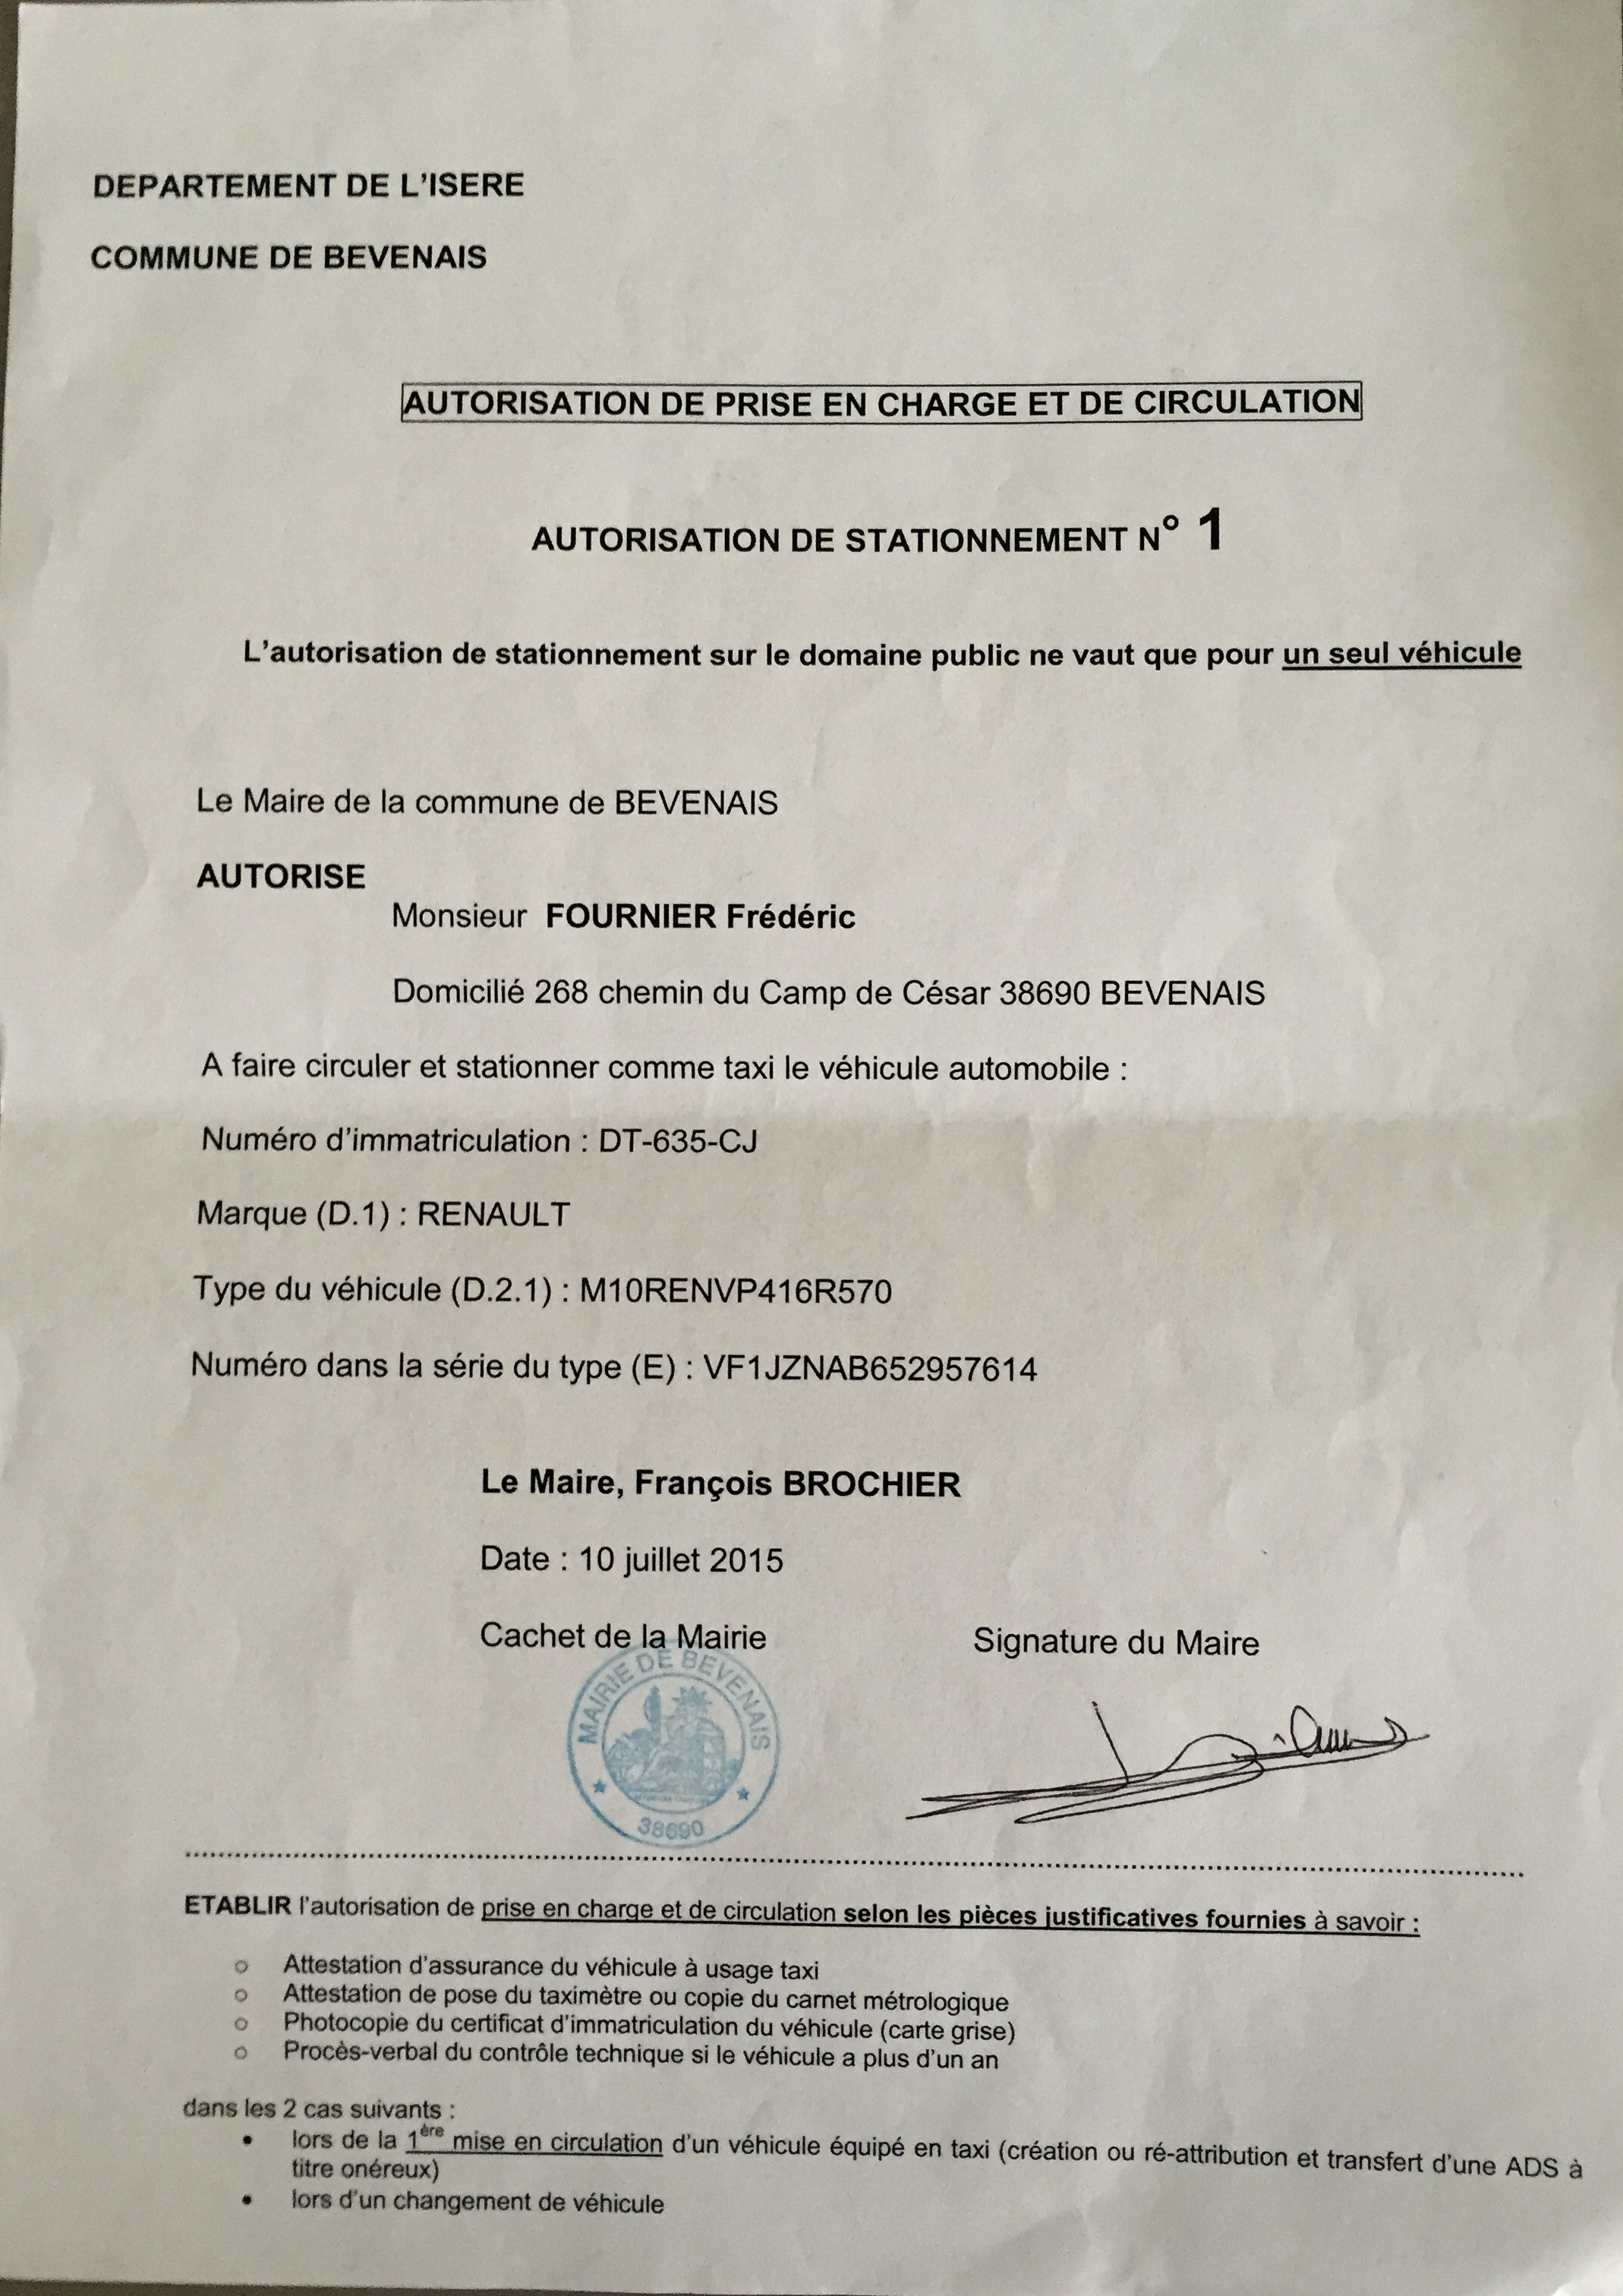 Fournier taxi transport licence